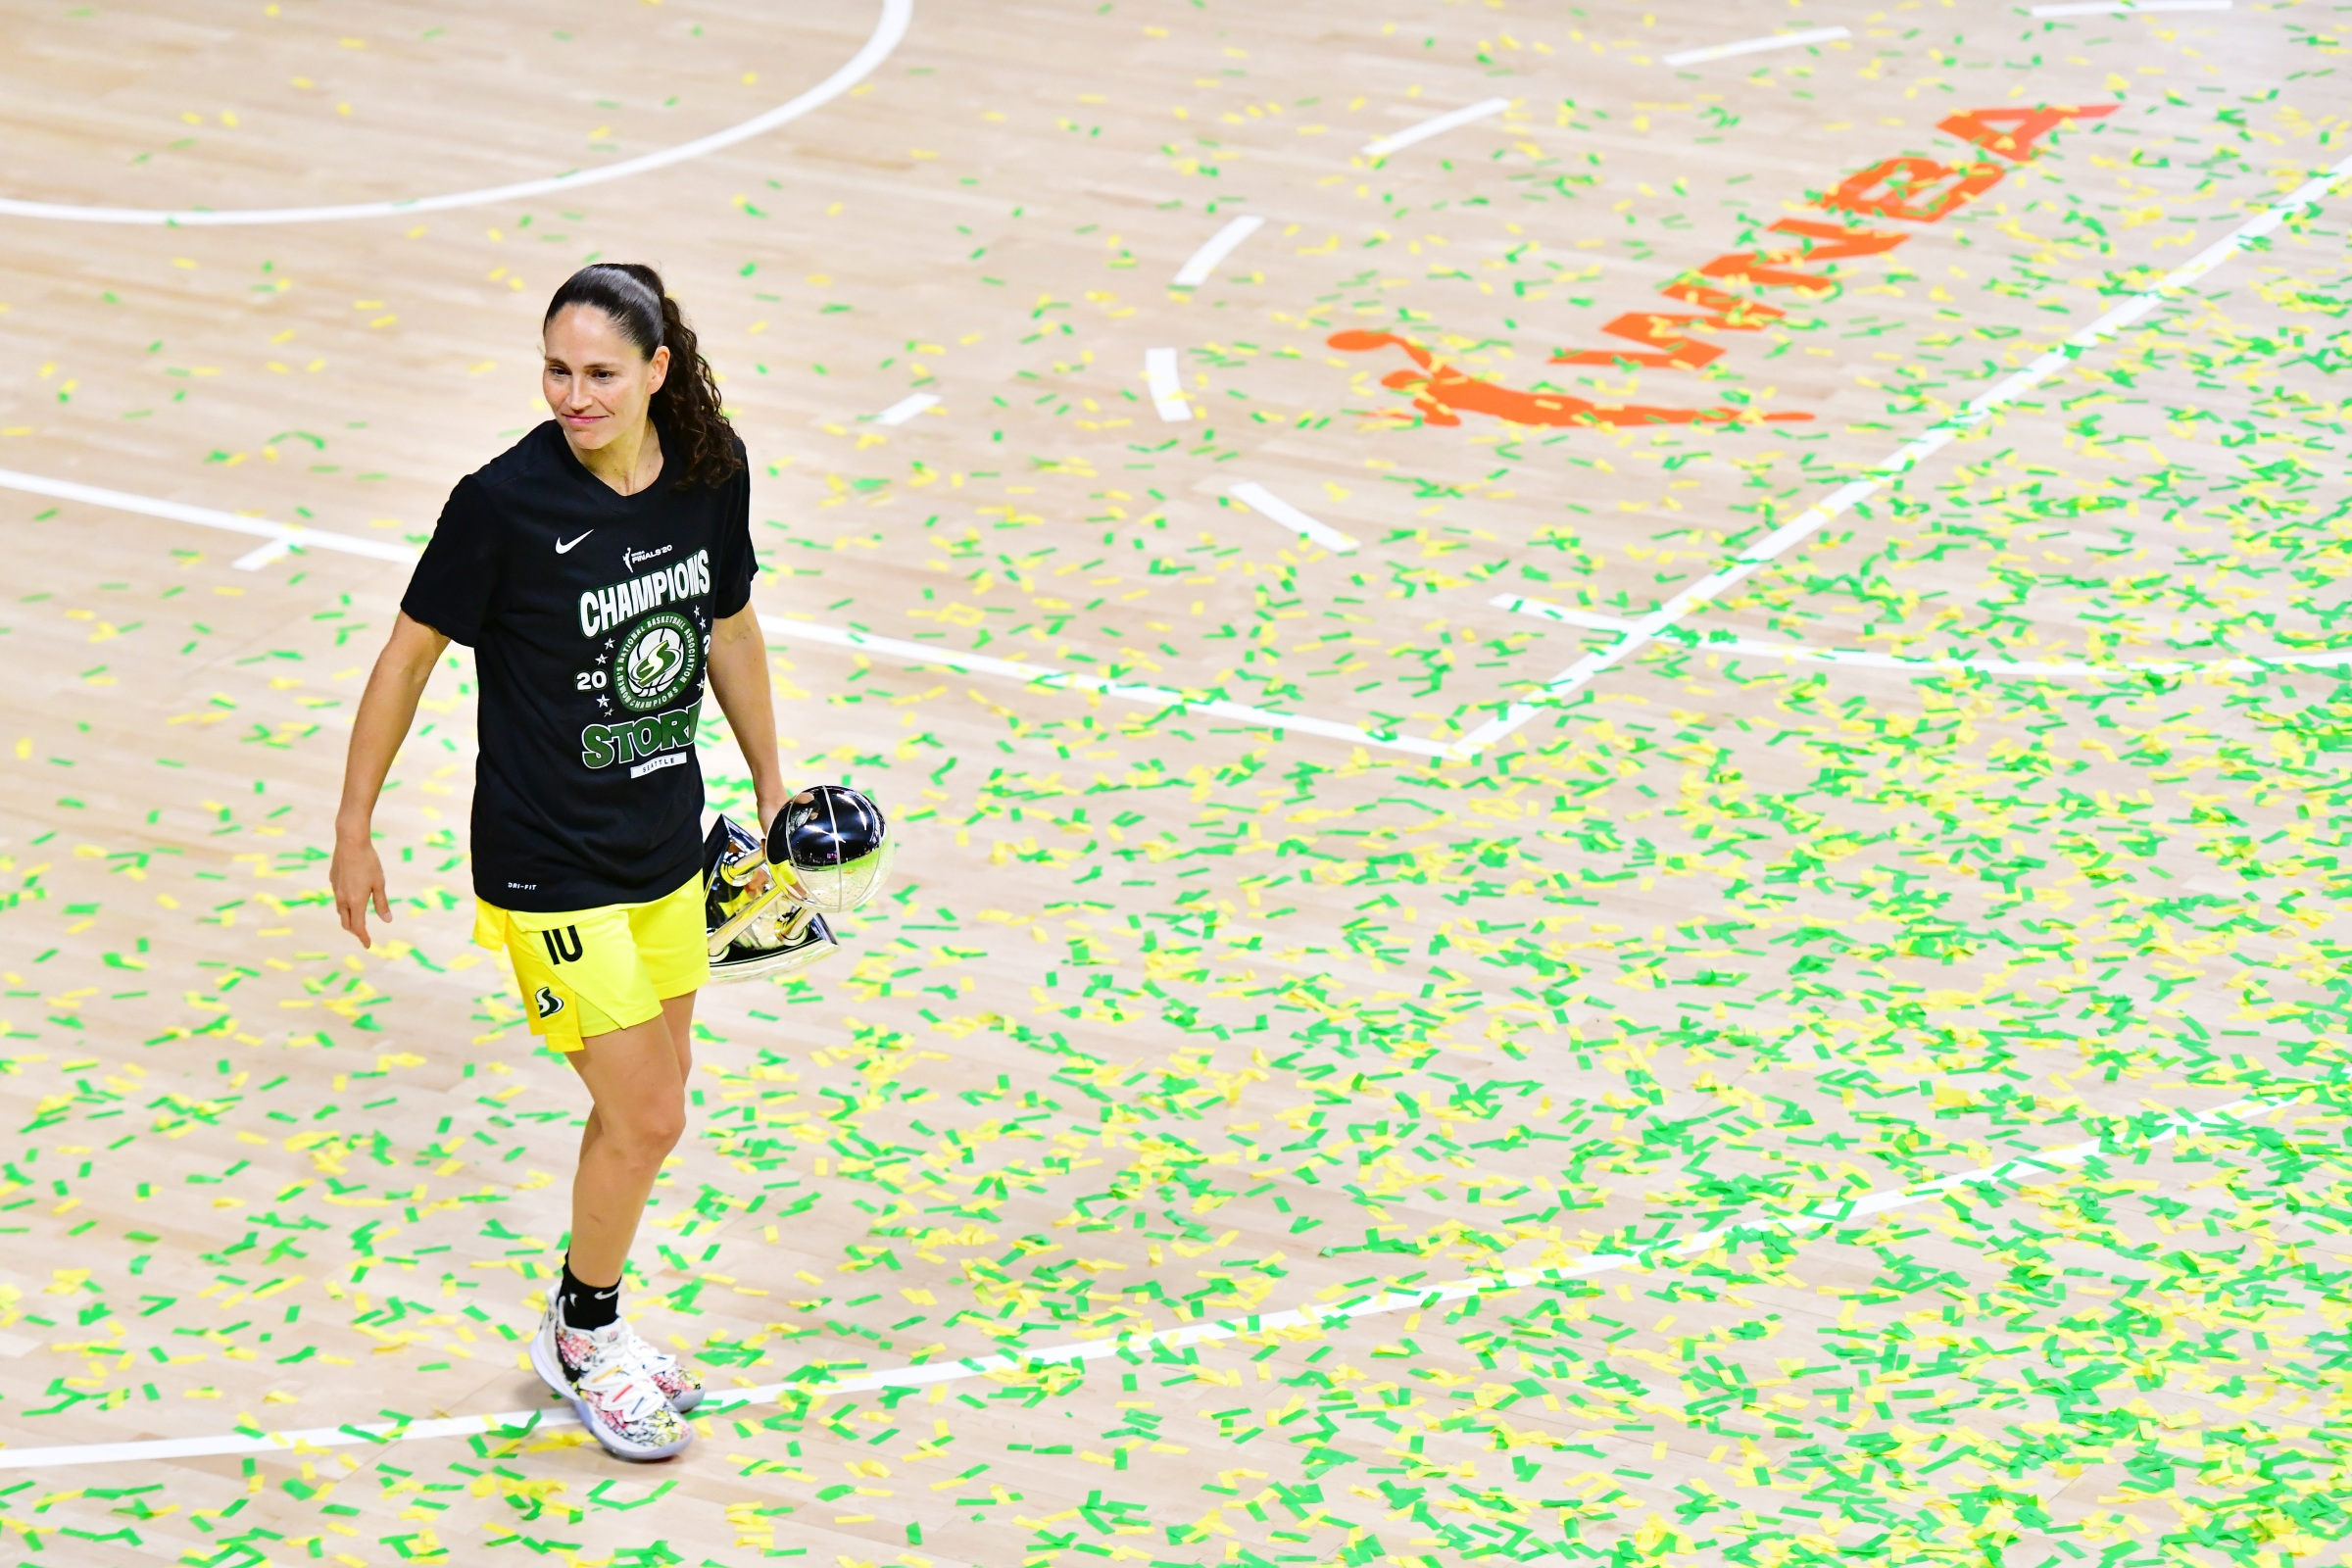 Sue Bird #10 of the Seattle Storm walks across the court after winning the WNBA Championship following Game 3 of the WNBA Finals against the Las Vegas Aces at Feld Entertainment Center on October 06, 2020 in Palmetto, Florida.